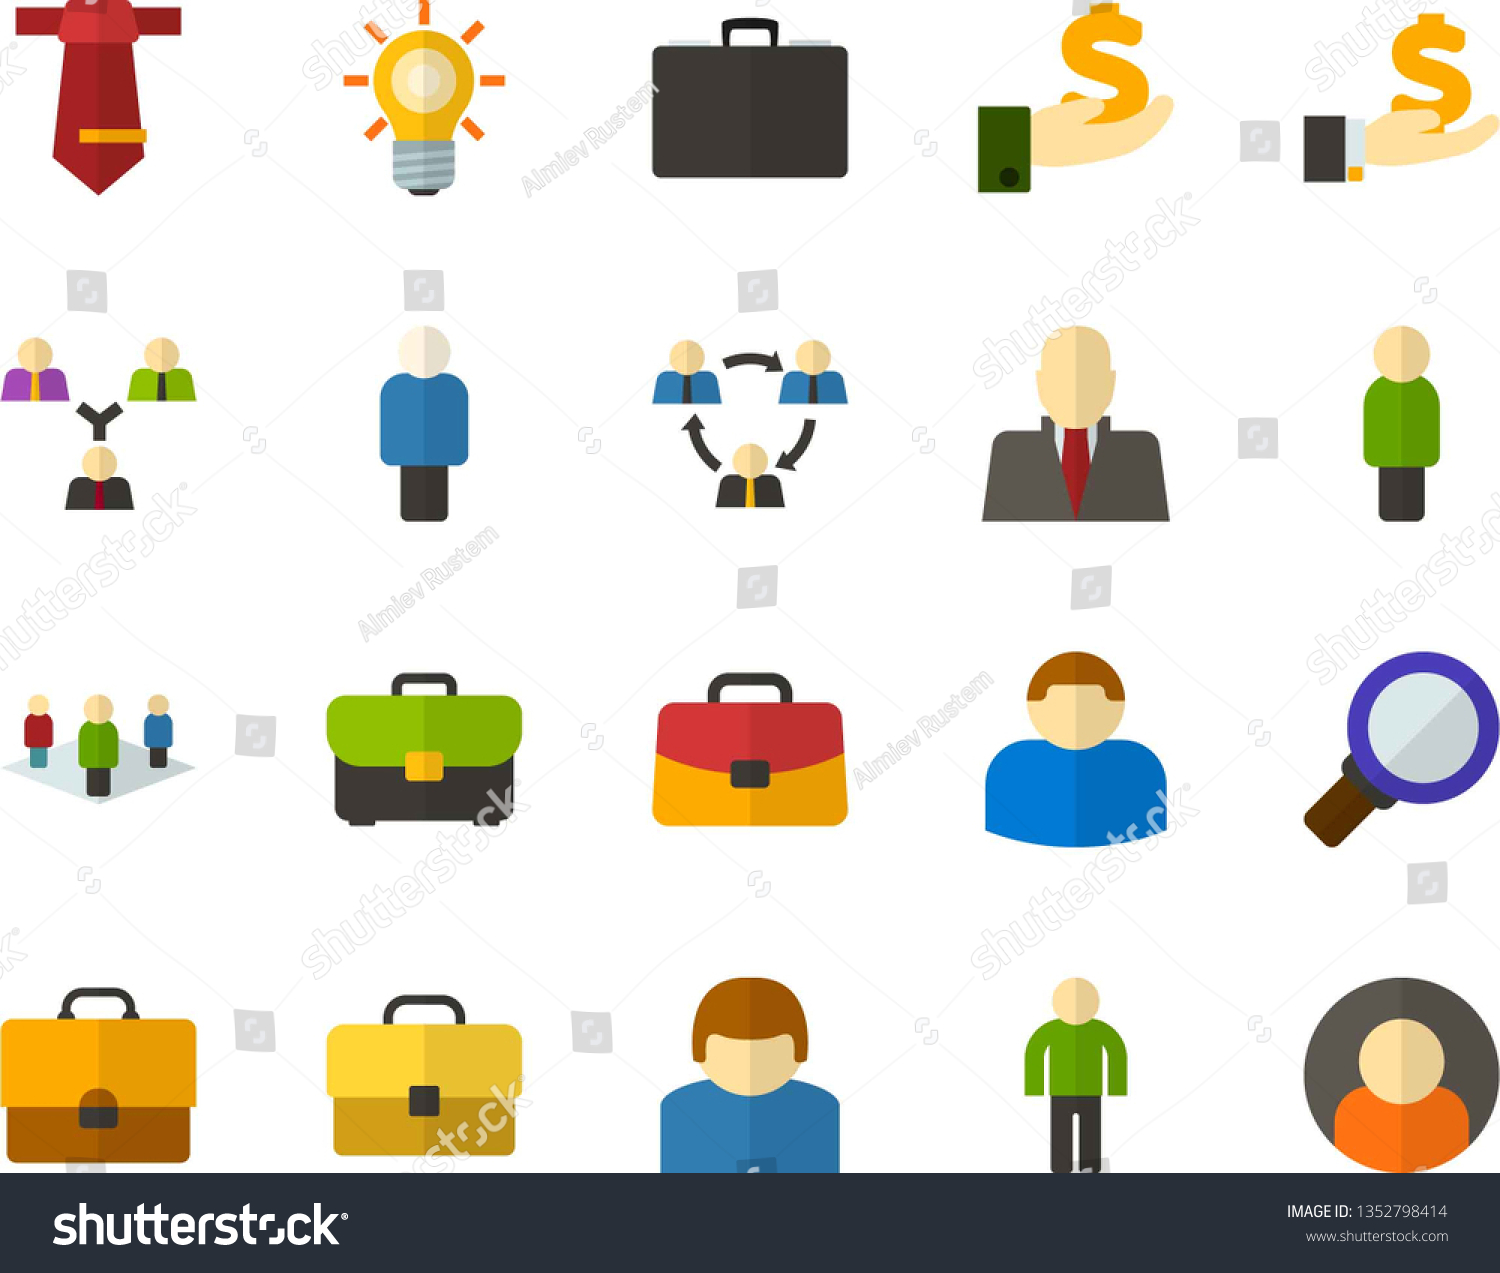 2eb440281 Color Flat Icon Set - person flat vector, schoolbag, investments,  briefcase, manager